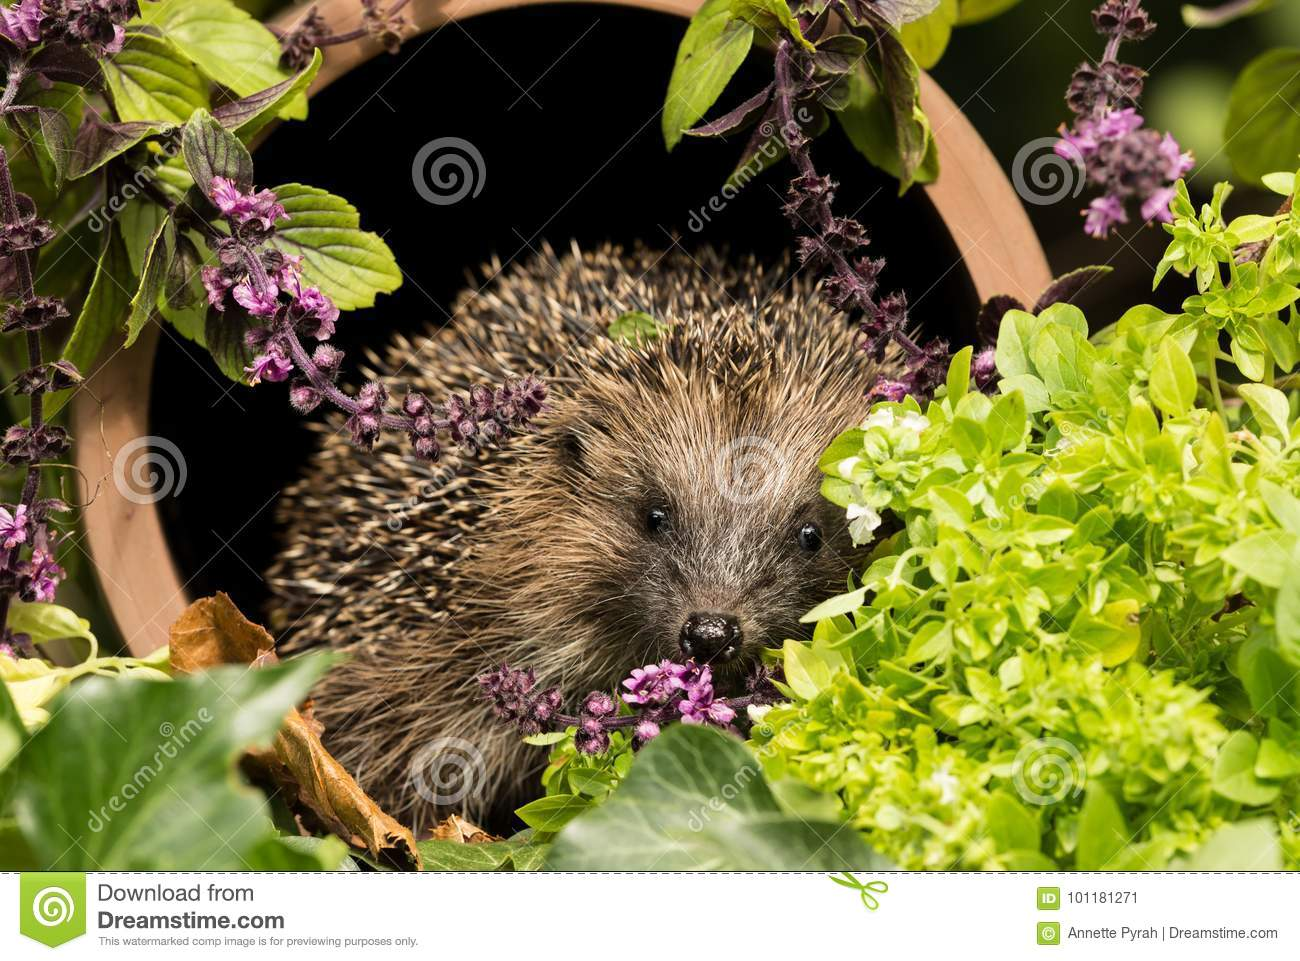 Charmant Wild British Hedgehog Inside A Drainage Pipe In The Herb Garden